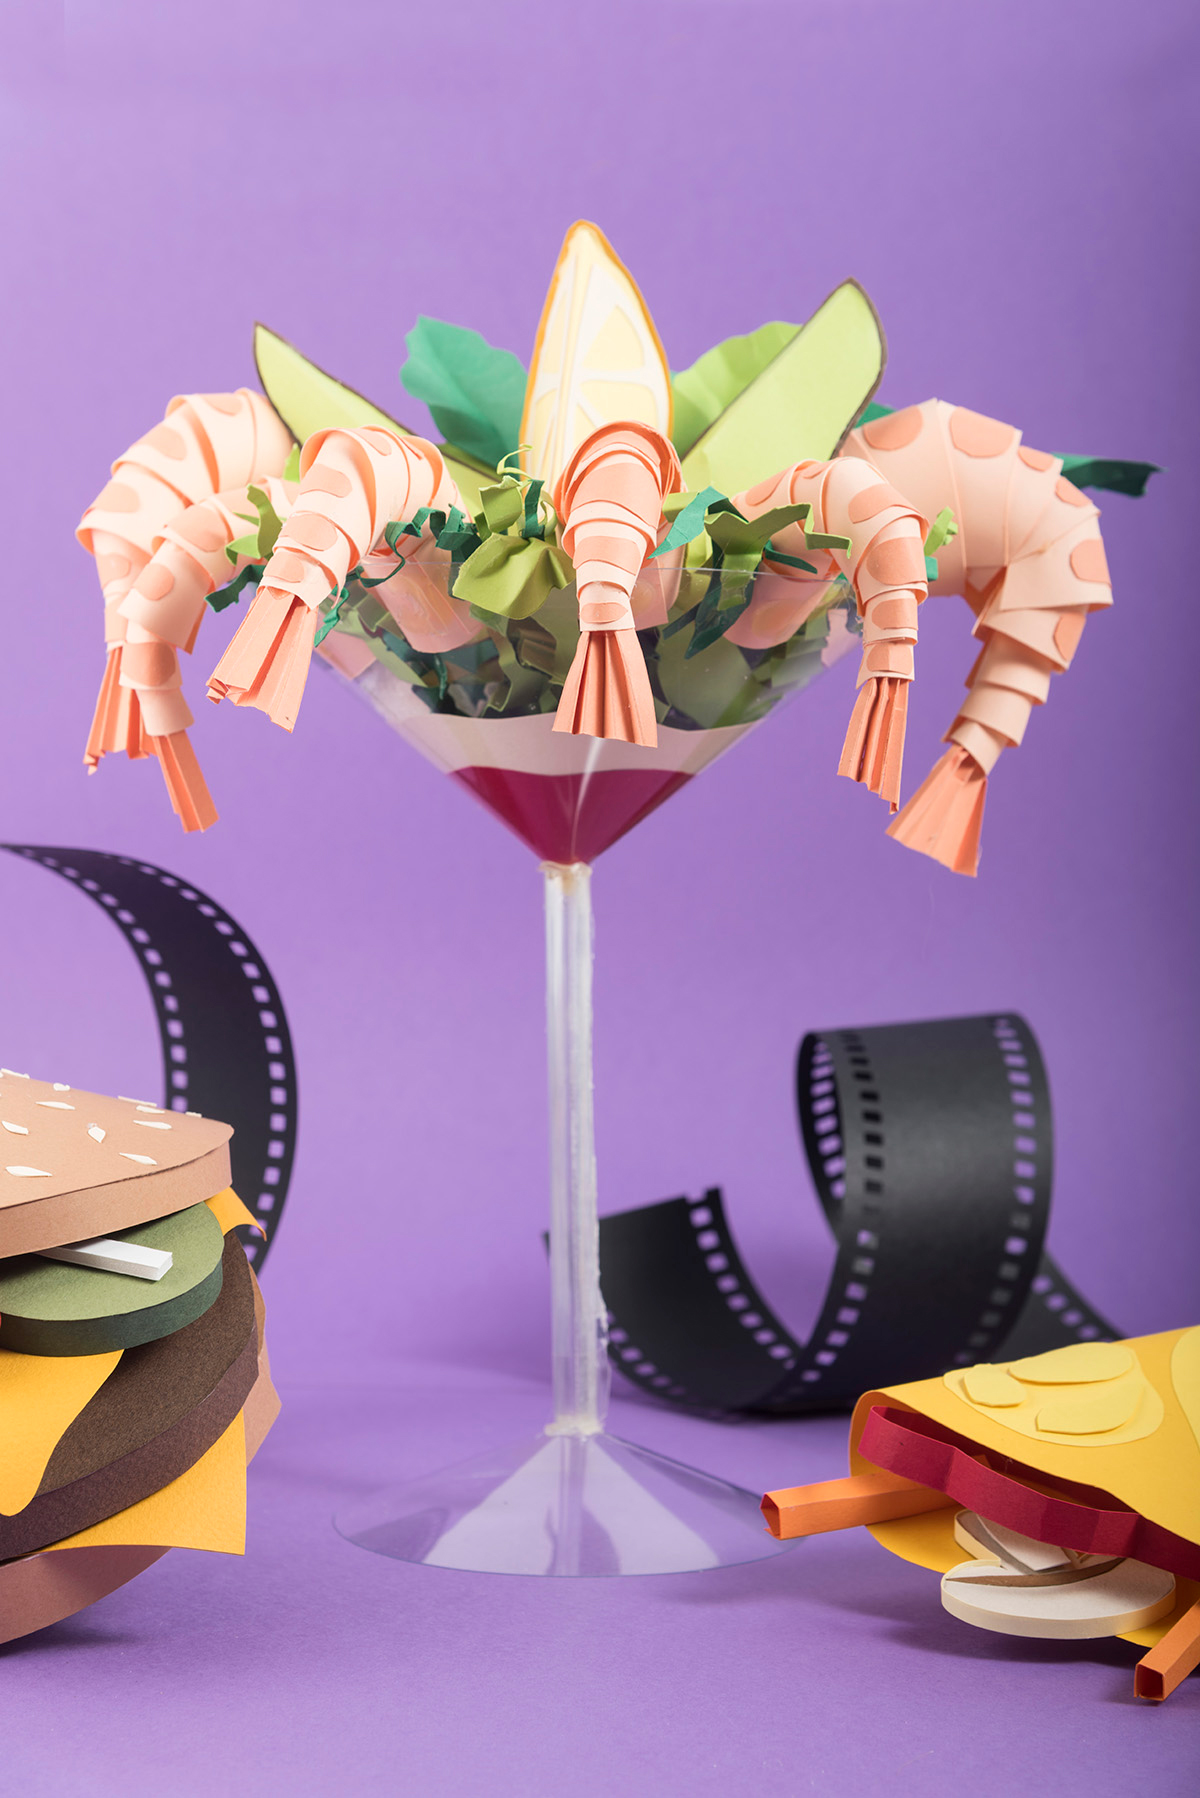 Prawn-Cocktail.jpg